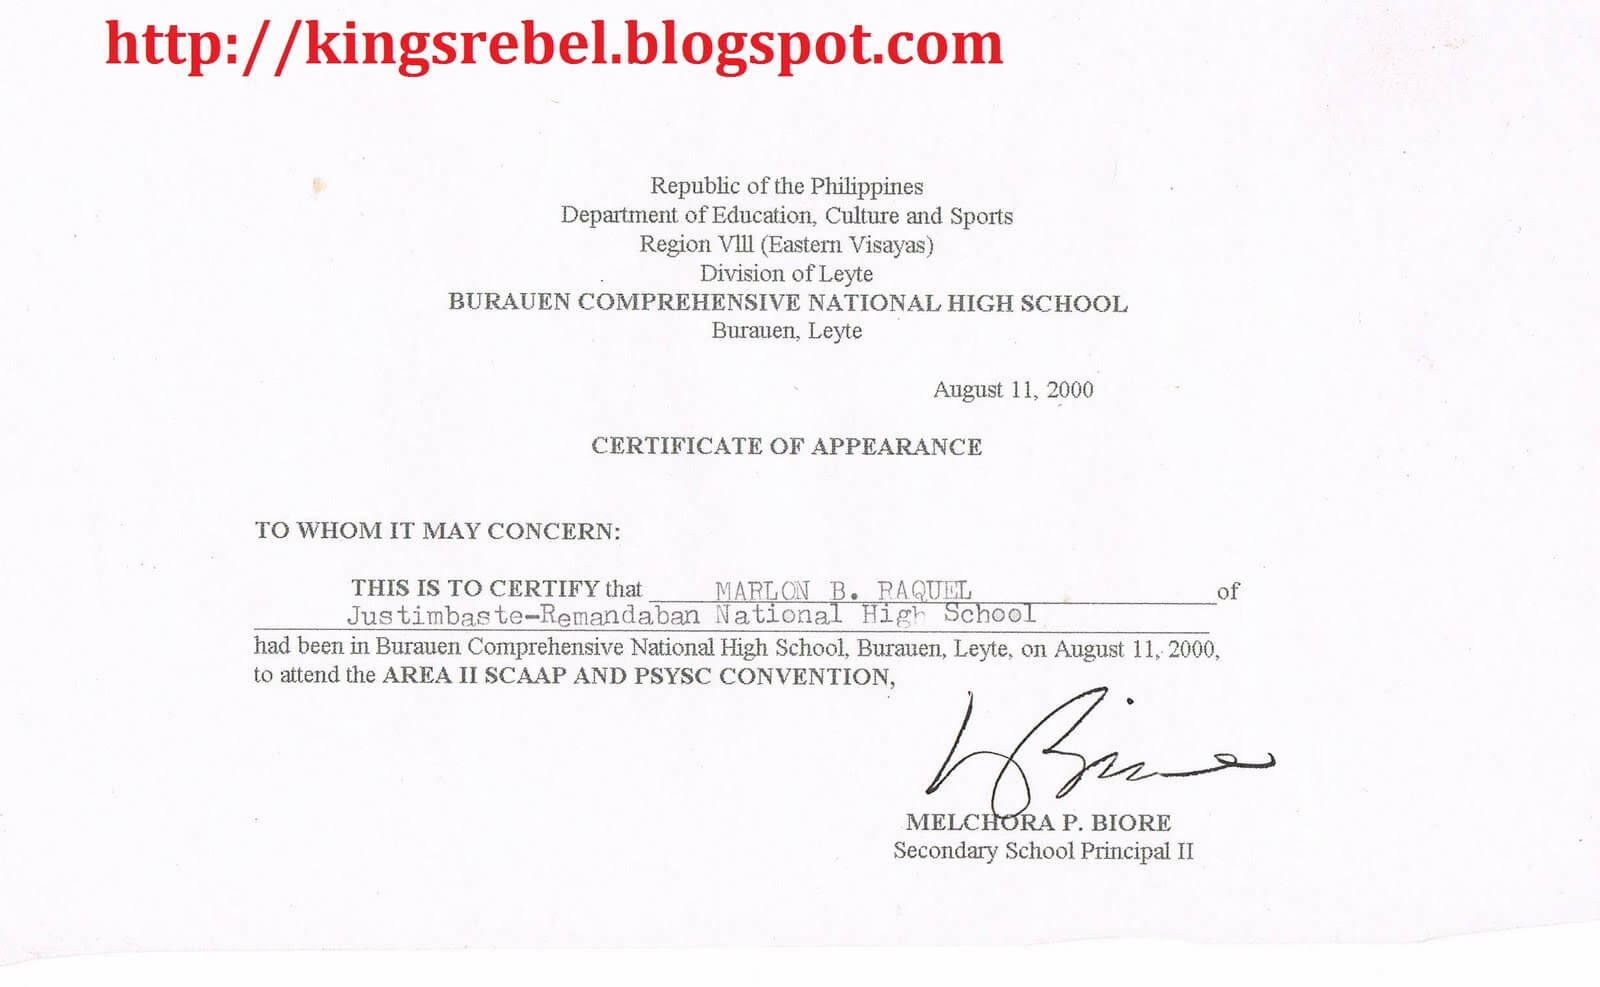 Certificate Of Appearance Template ] - Automated Printing Of Pertaining To Certificate Of Appearance Template